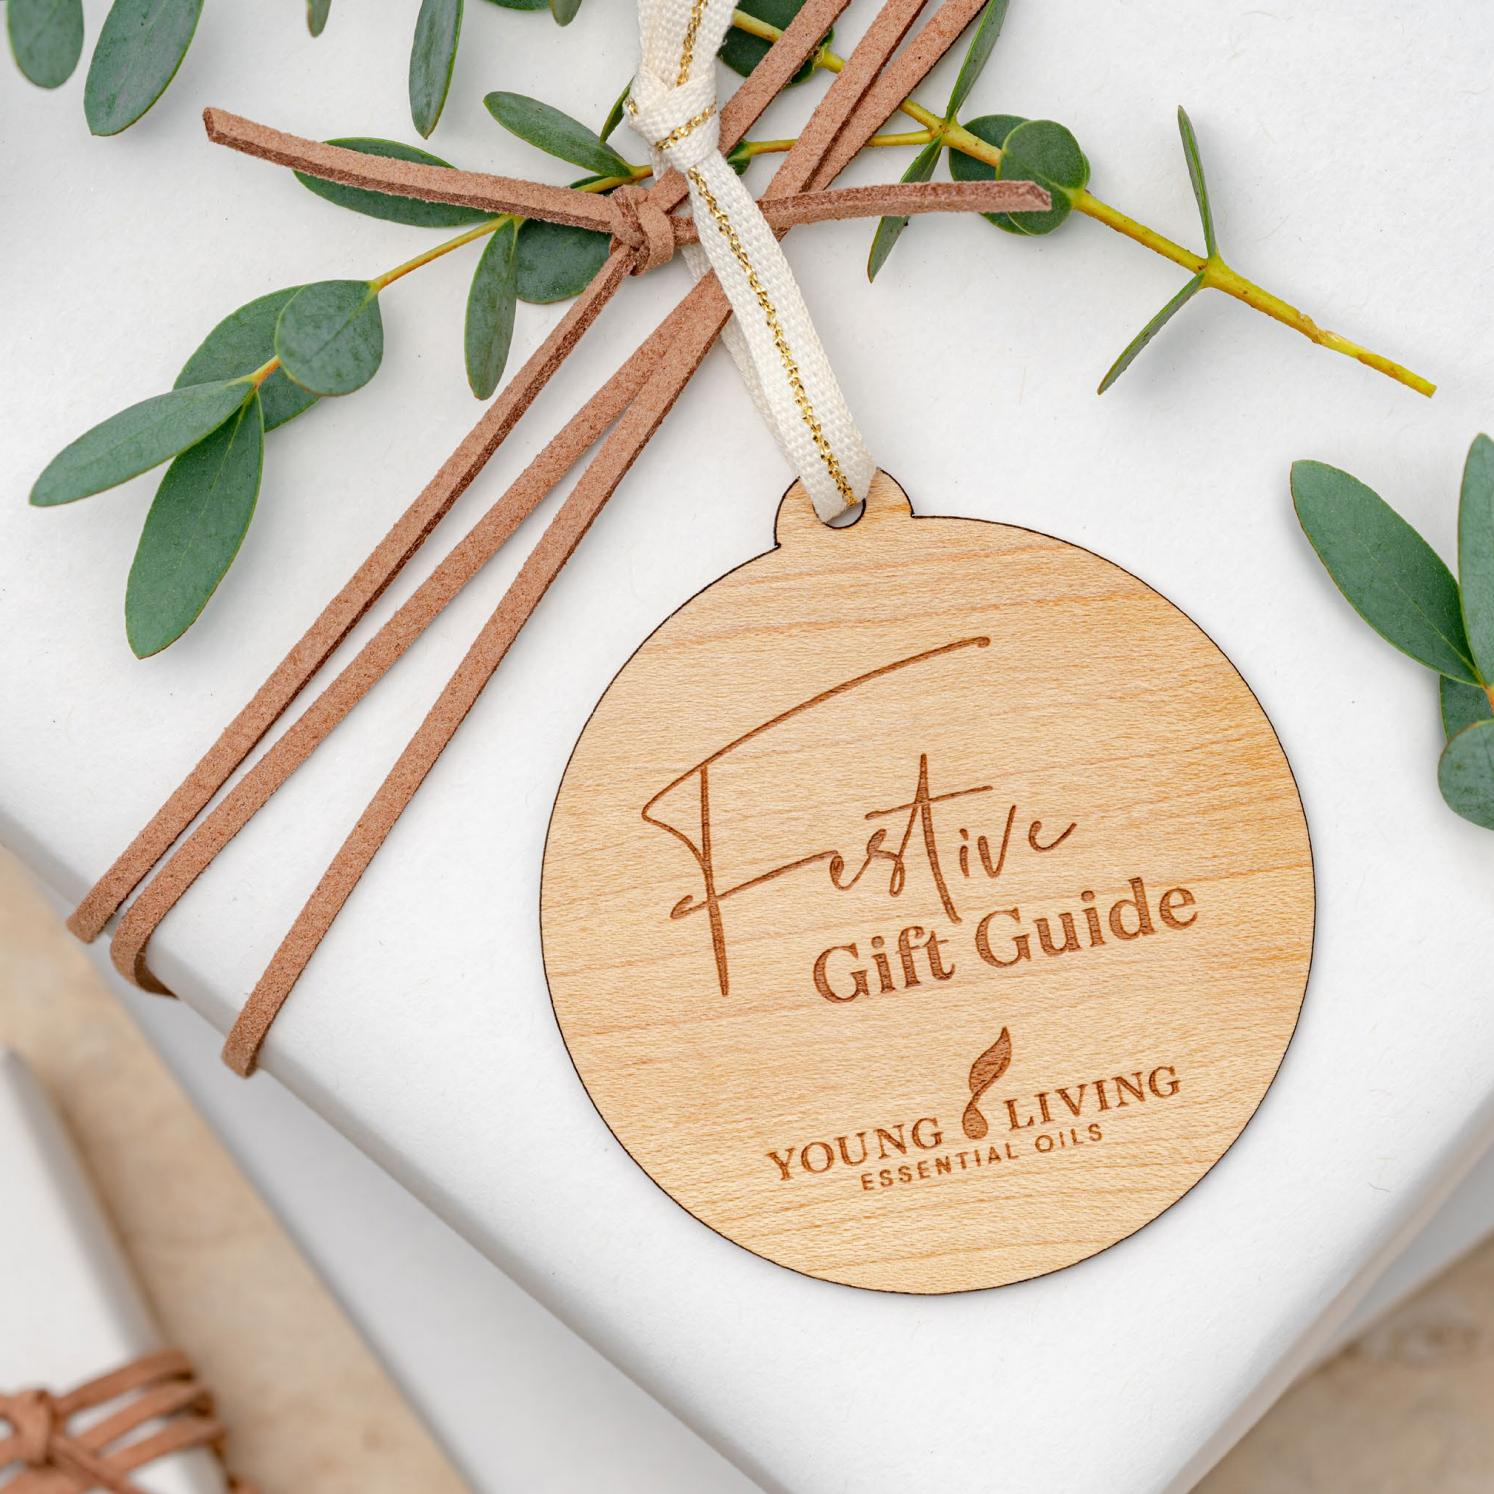 Yl Festive Gift Guide 2020 En By Young Living Europe Issuu